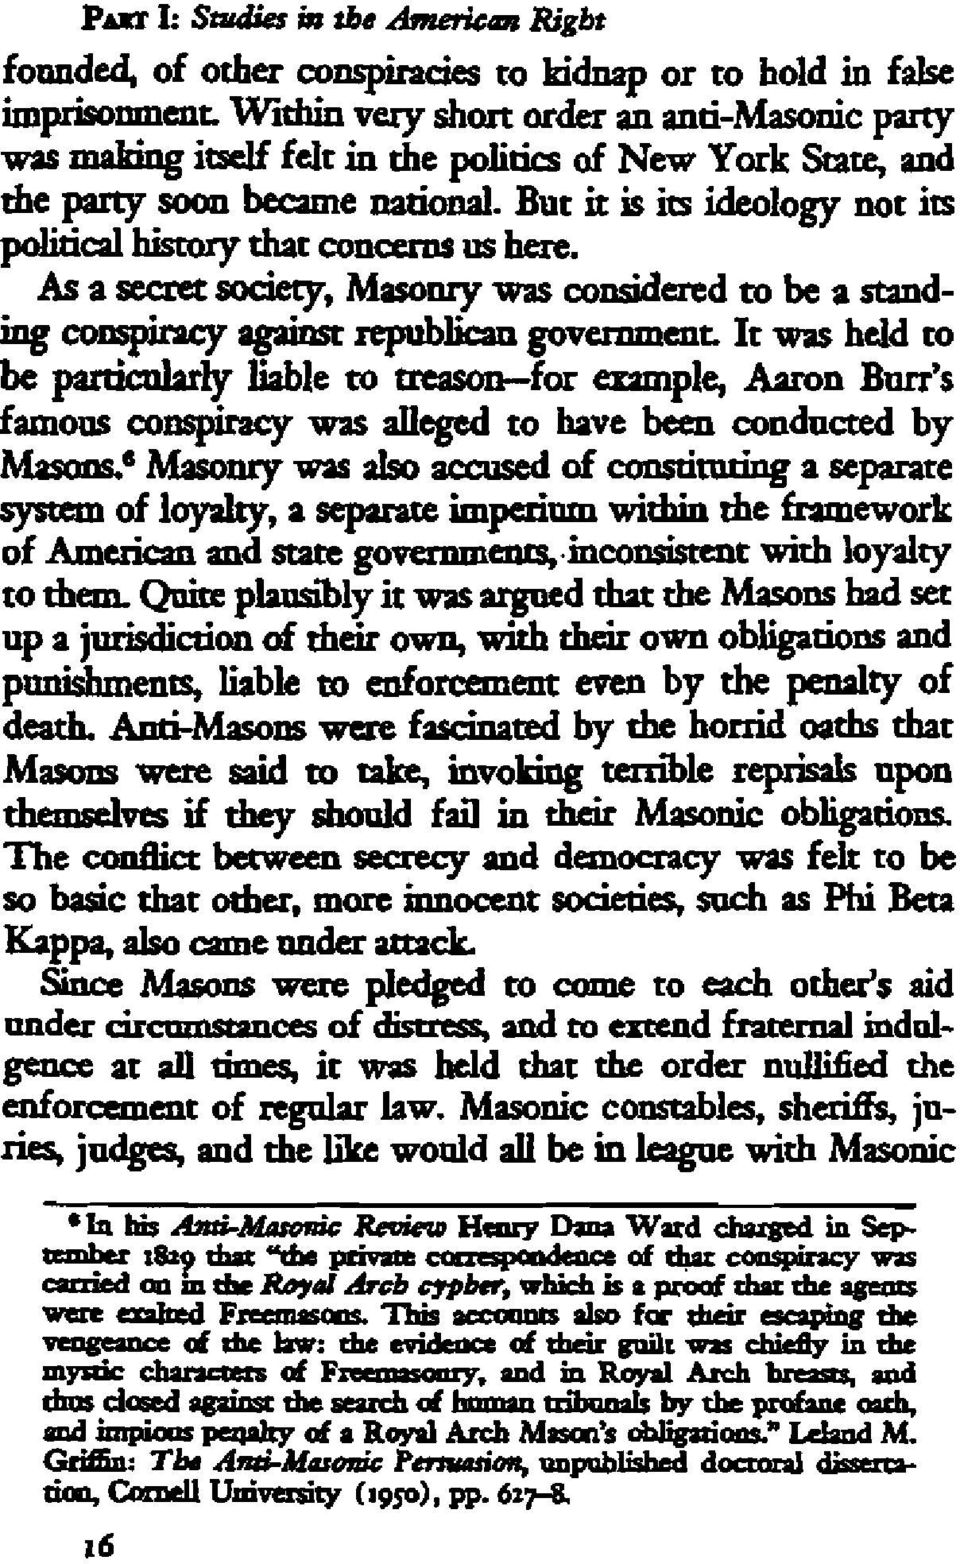 But it is its ideology not its political history that concerns us here. As a seaet society, Masonry was codsidered to be a standing couspiracy against republican government.